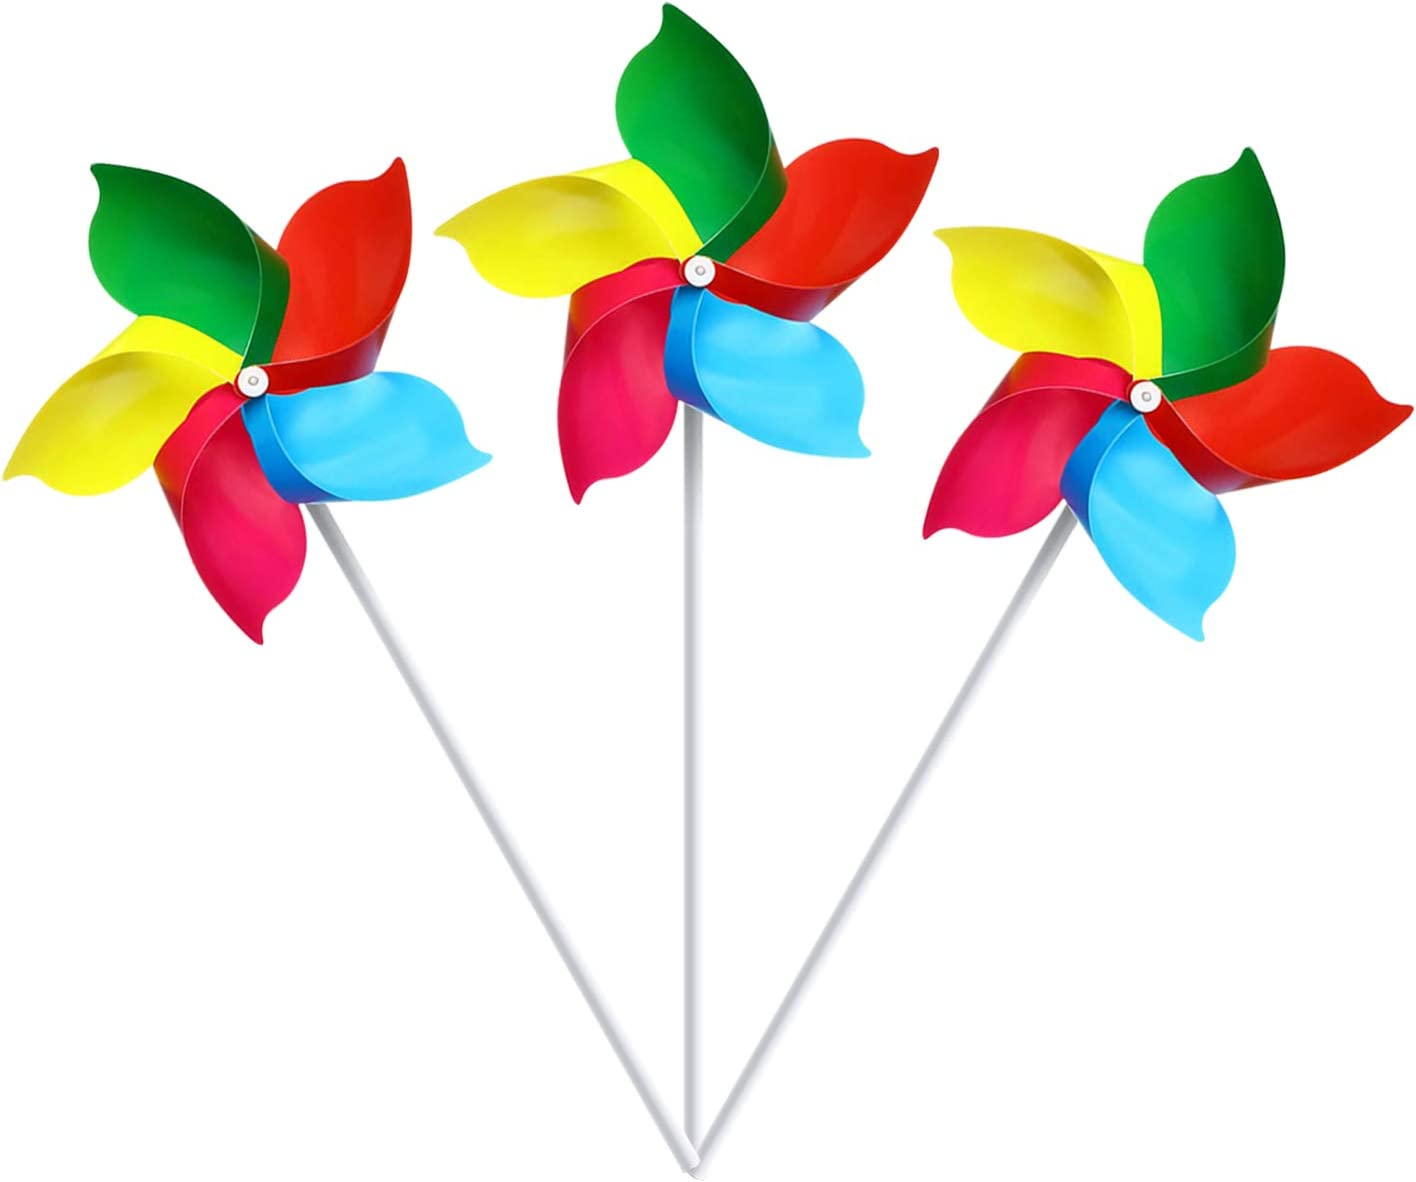 Woohome 5 Colors Mixed Pinwheels Lawn 5 Leaves Outdoor Windmill Outdoor Decorational Pinwheels Windmill for Yard and Garden